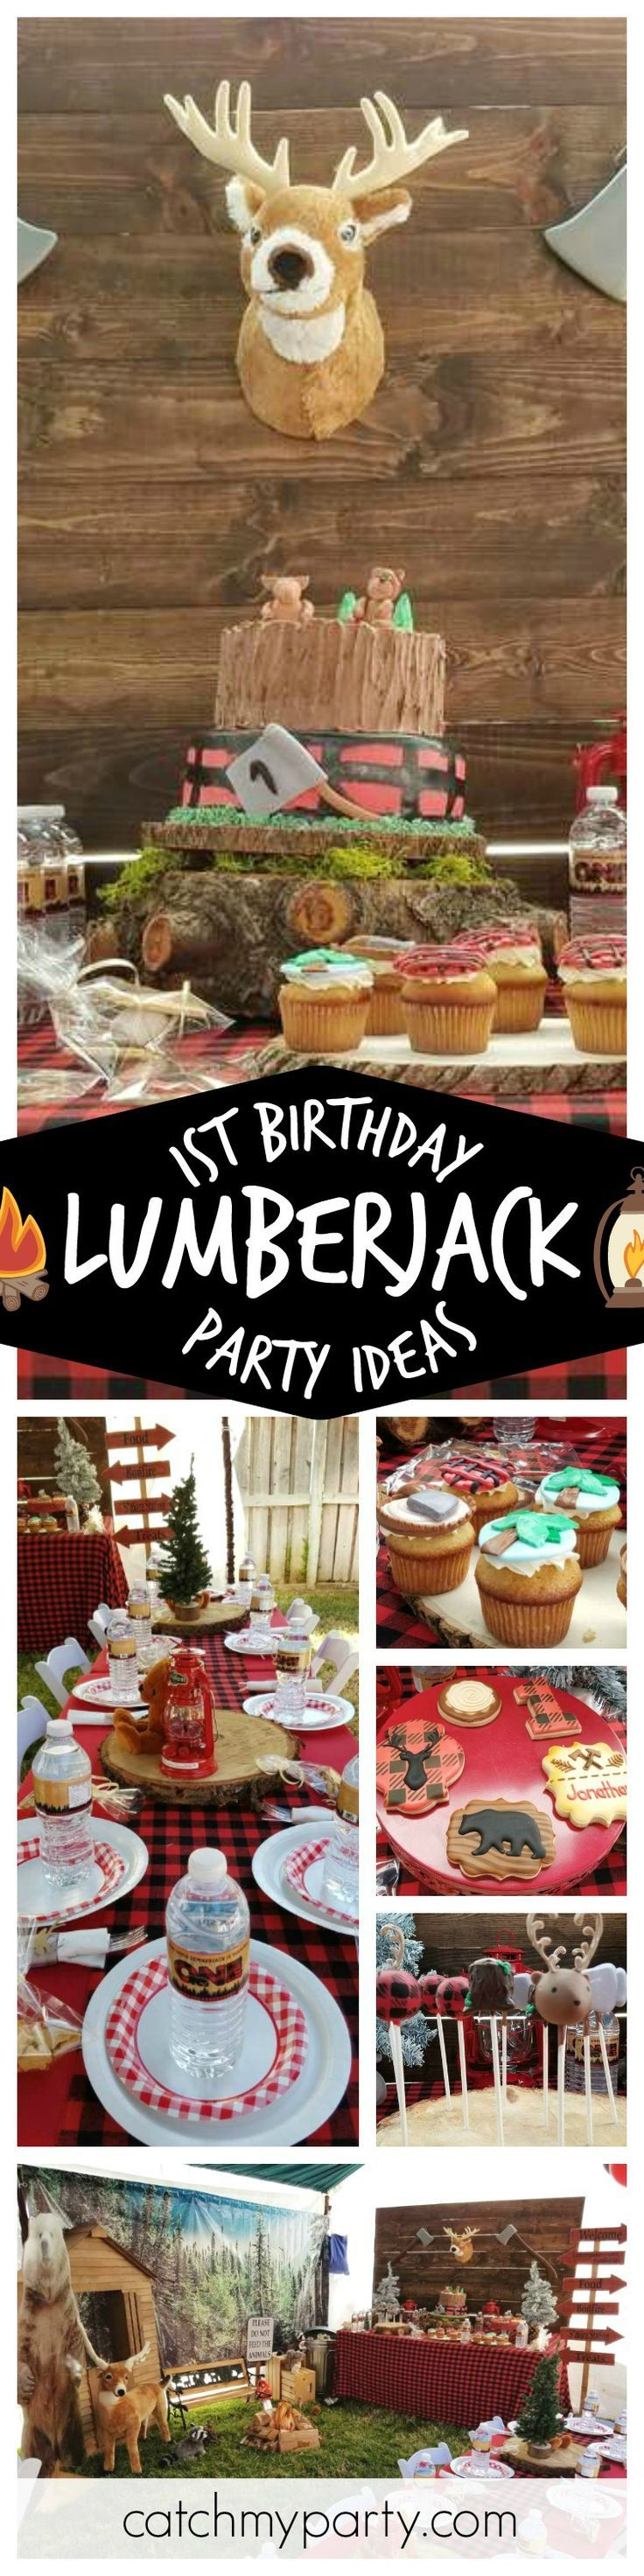 Loving this 1st birthday Lumberjack themed party. The decorations and dessert table are awesome!! See more party ideas at CatchMyParty.com